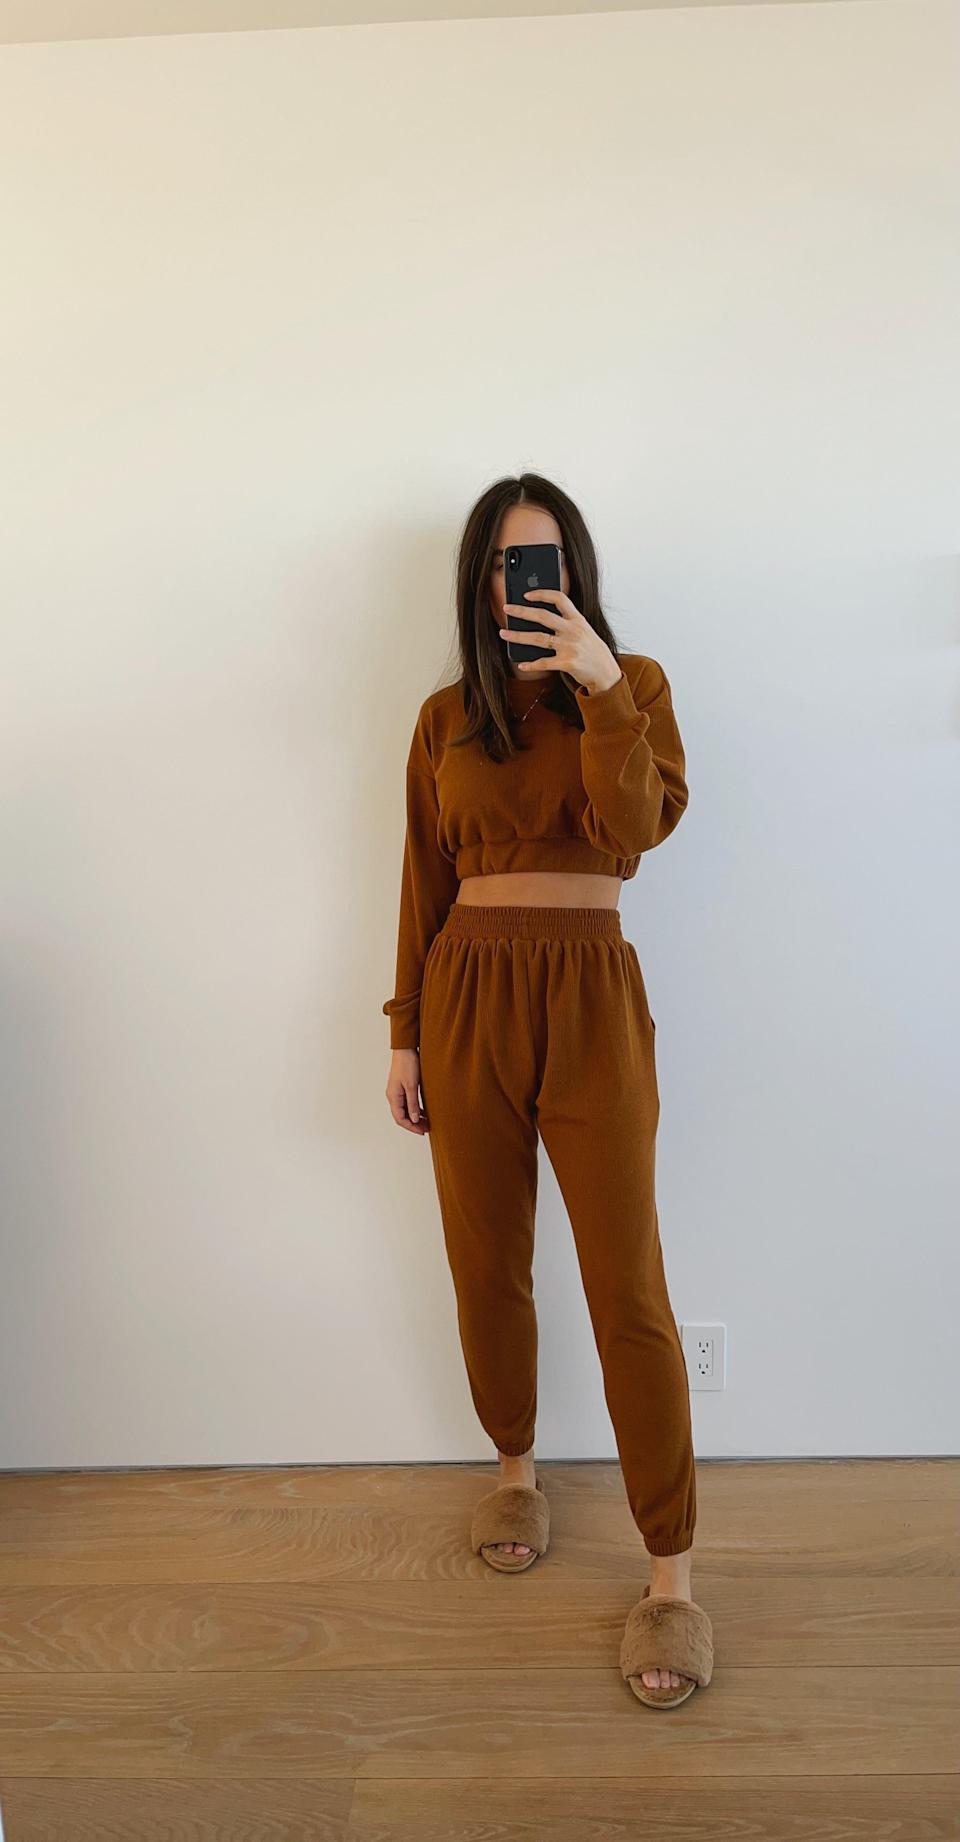 <p>Whenever I wear this light brown <span>Aoxjox Two-Piece Sweat Set</span> ($38), I always get questions about where it's from. Not only does it look super stylish, but it's made of the softest material. I've honestly considered sleeping in it, it's that good. If you're looking for one set to elevate your loungewear game, this is definitely the way to go. </p>